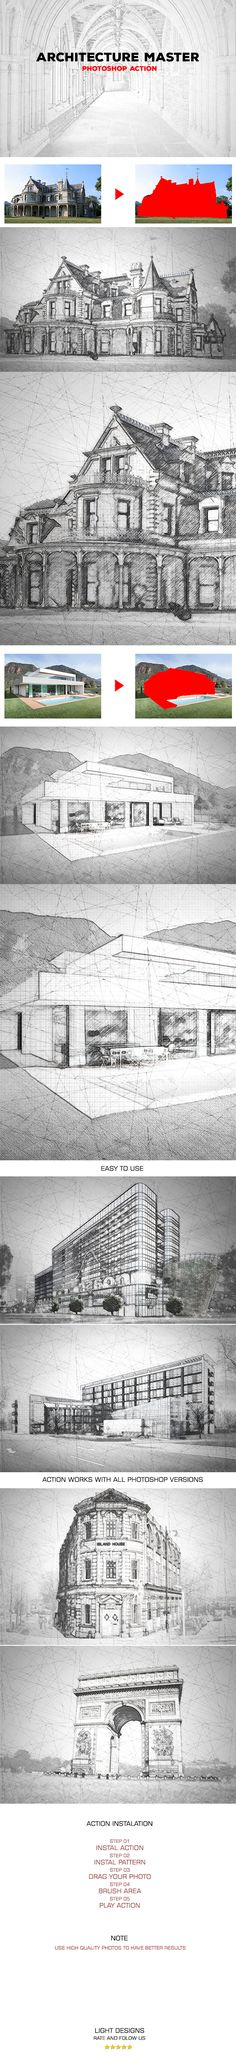 Architecture Master  Photoshop Action #33 — Photoshop PAT #architecture #handdrawing • Available here → https://graphicriver.net/item/architecture-master-photoshop-action-33/18591398?ref=pxcr